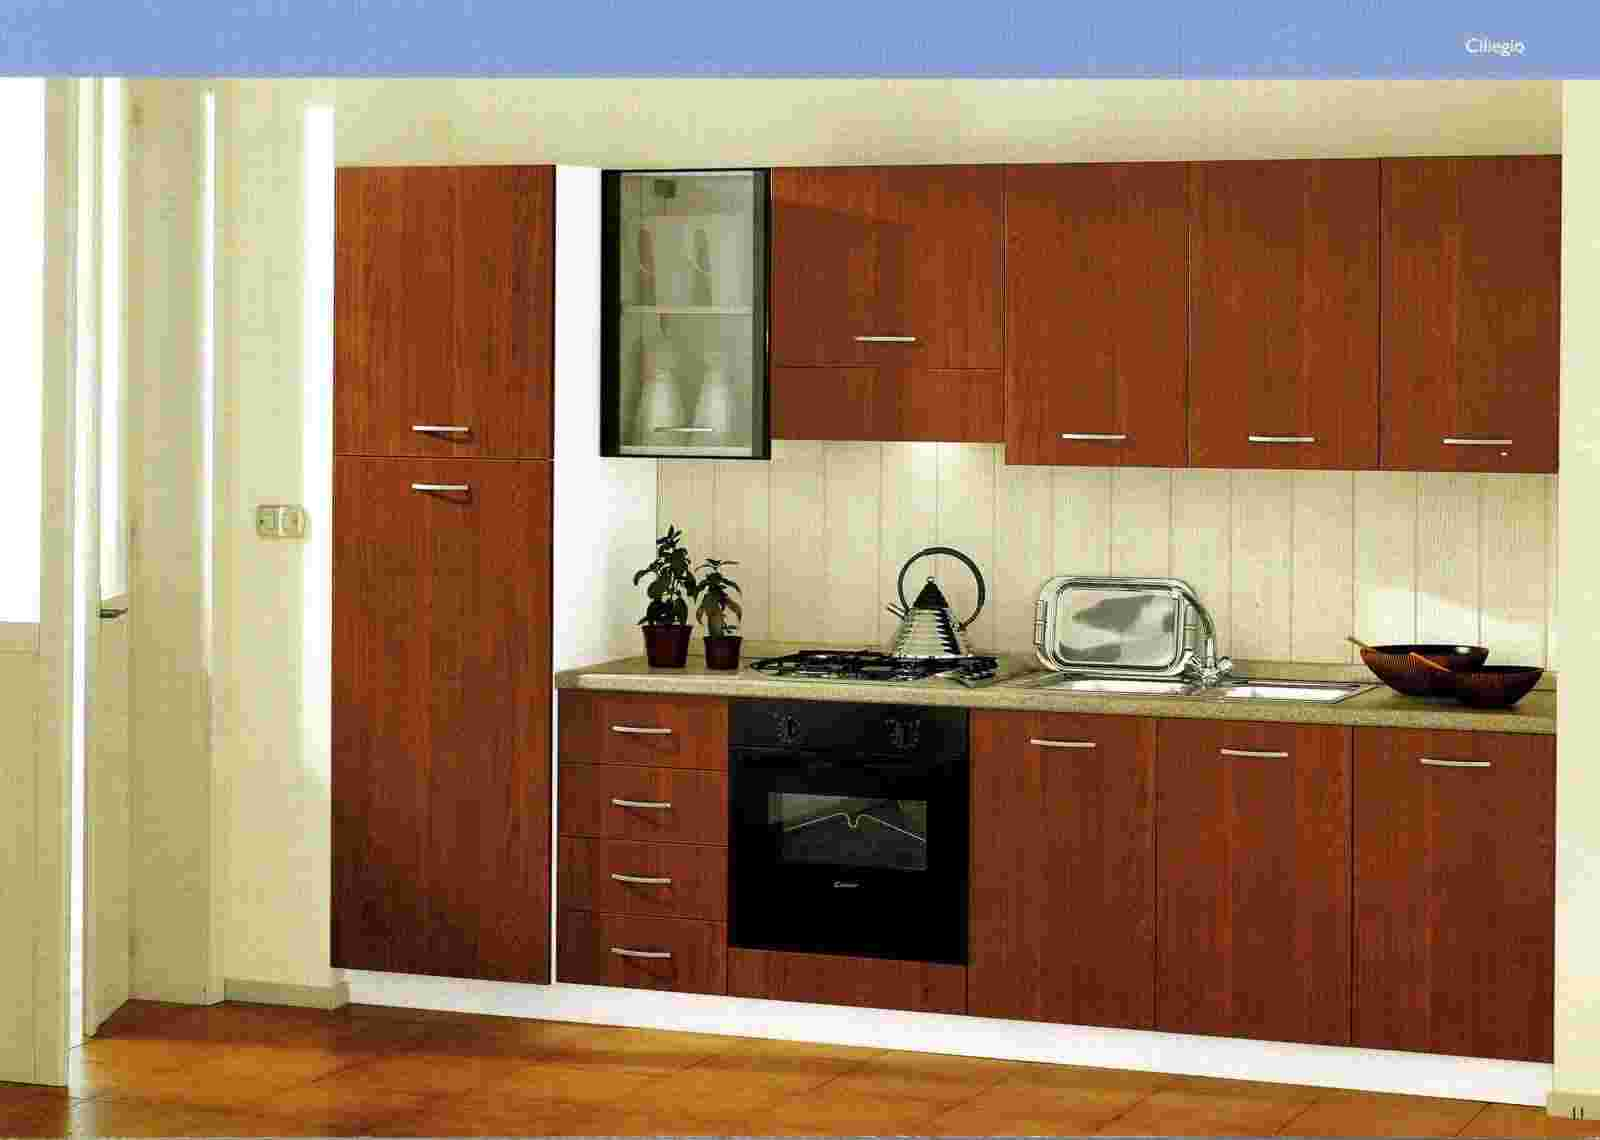 retro kitchen sets furniture photo - 4